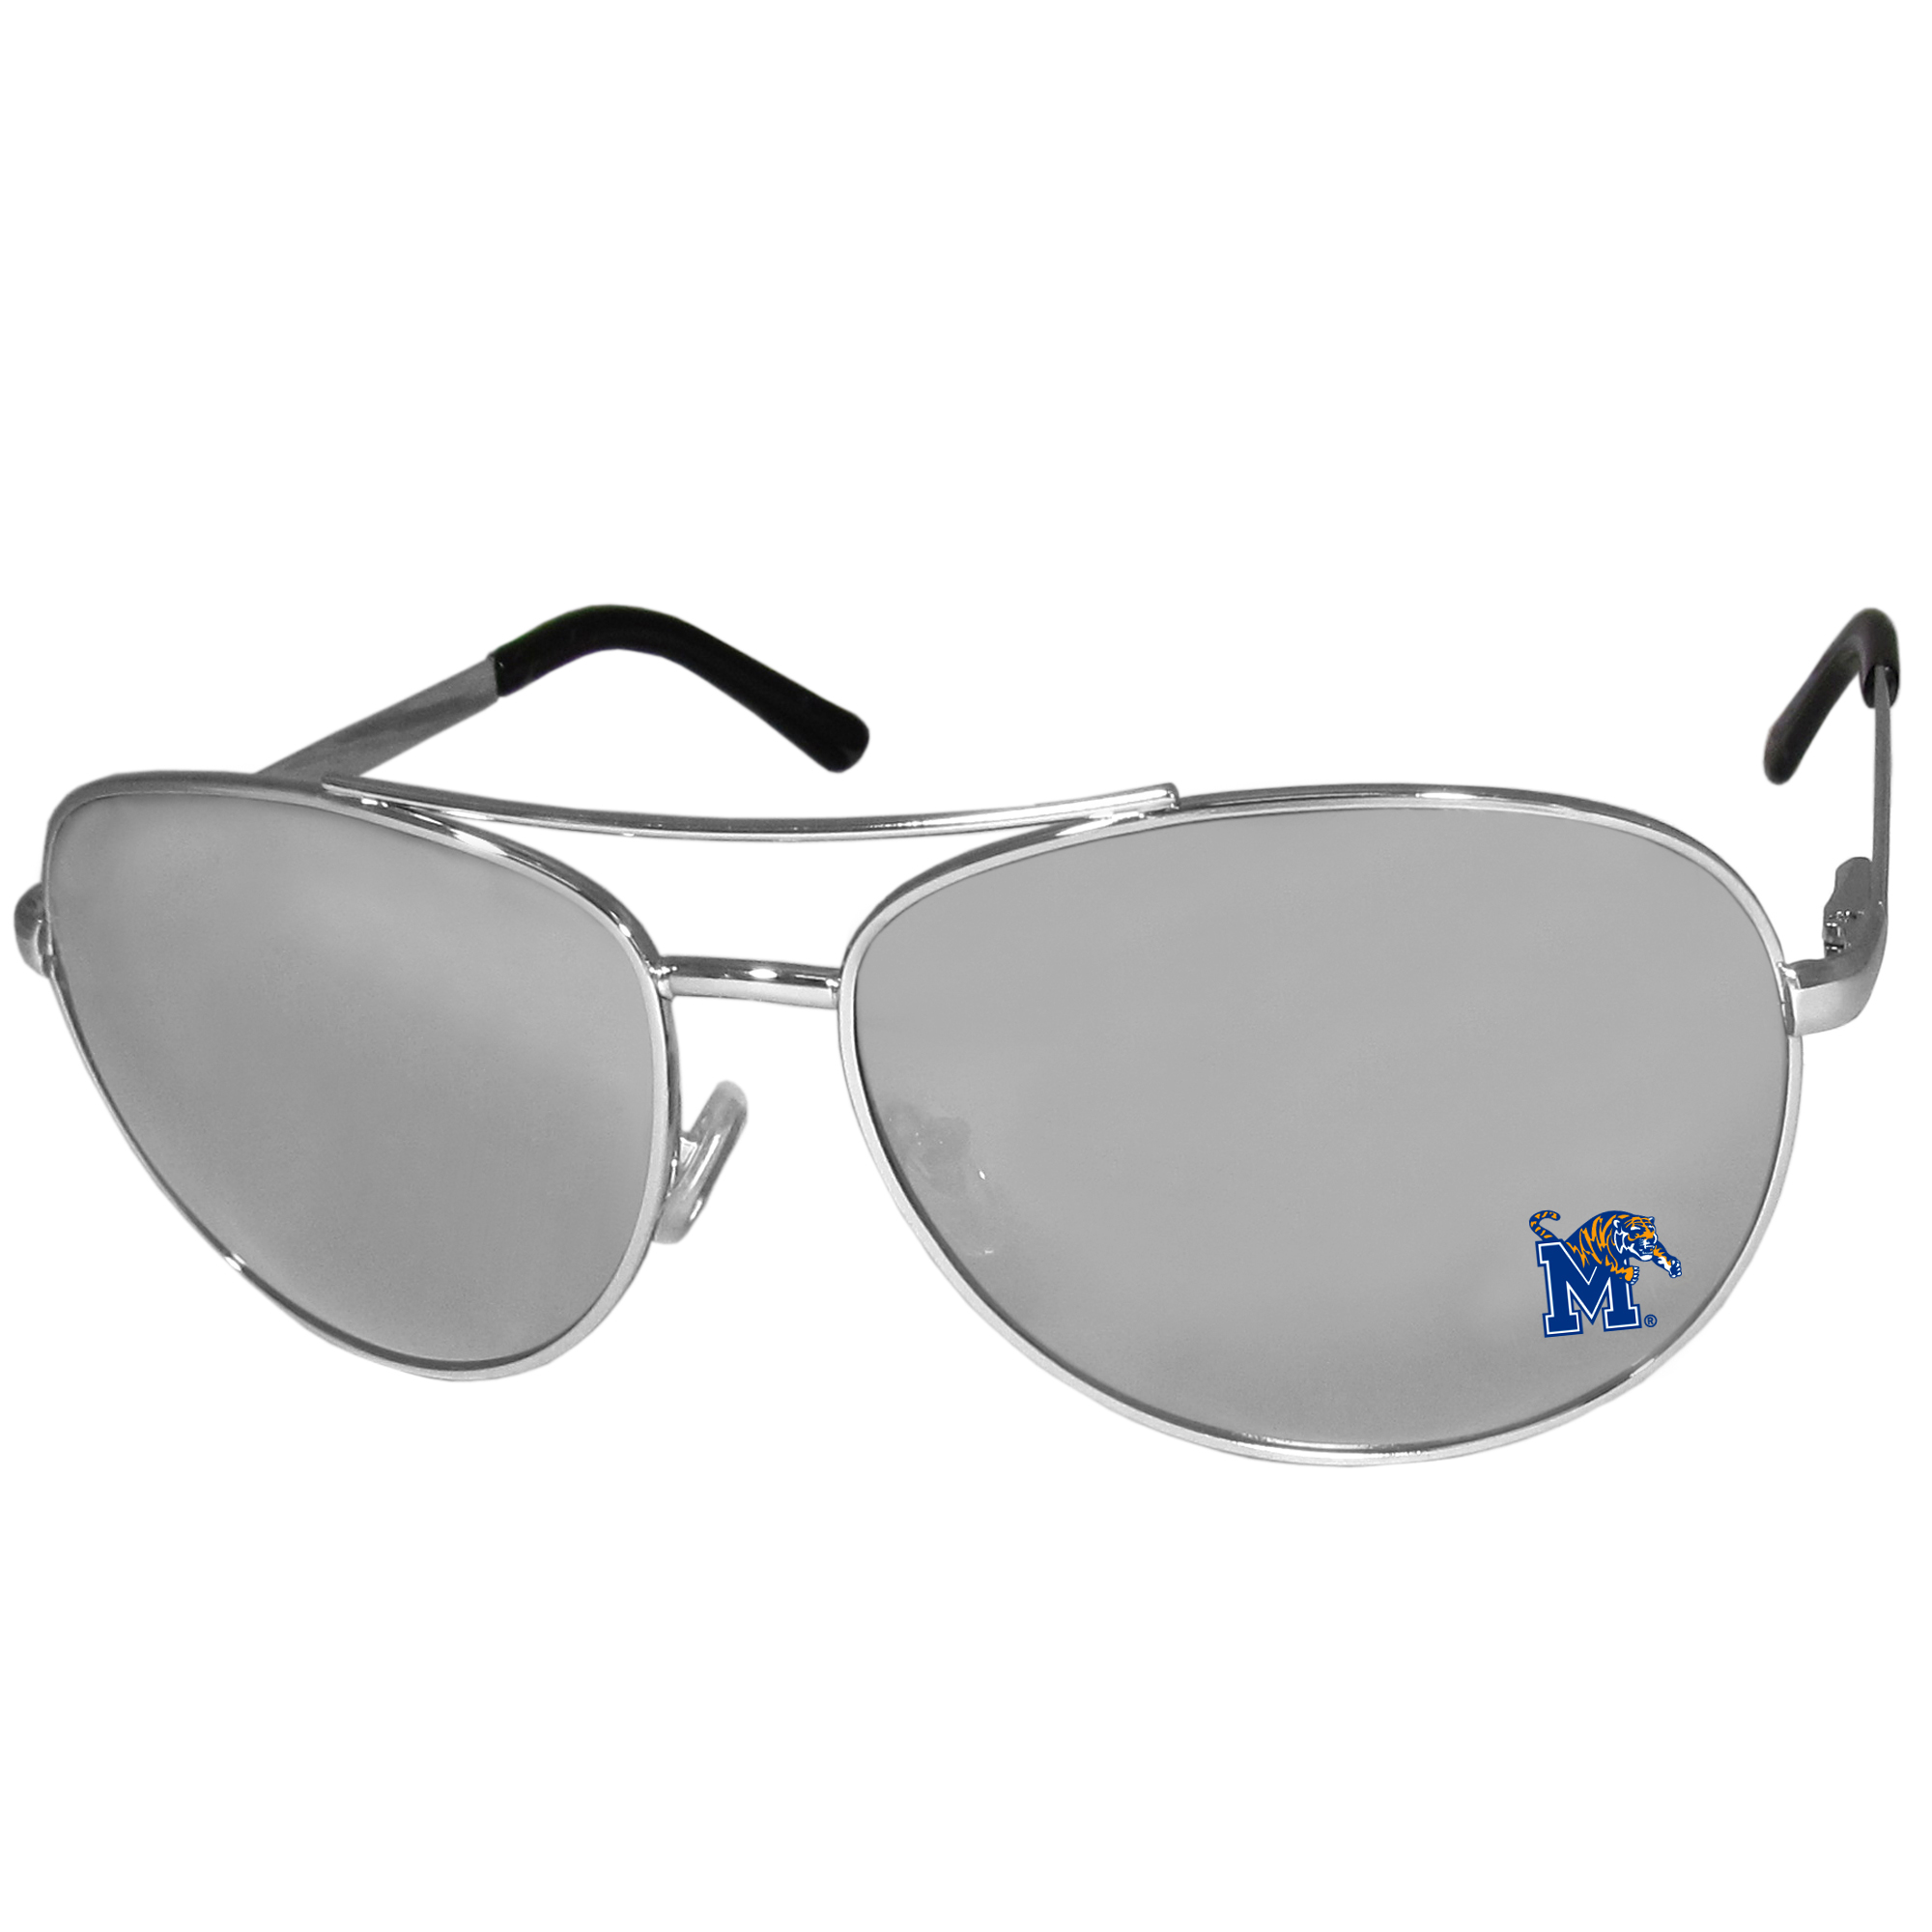 Memphis Tigers Aviator Sunglasses - Our aviator sunglasses have the iconic aviator style with mirrored lenses and metal frames. The glasses feature a silk screened Memphis Tigers logo in the corner of the lense. 100% UVA/UVB protection.